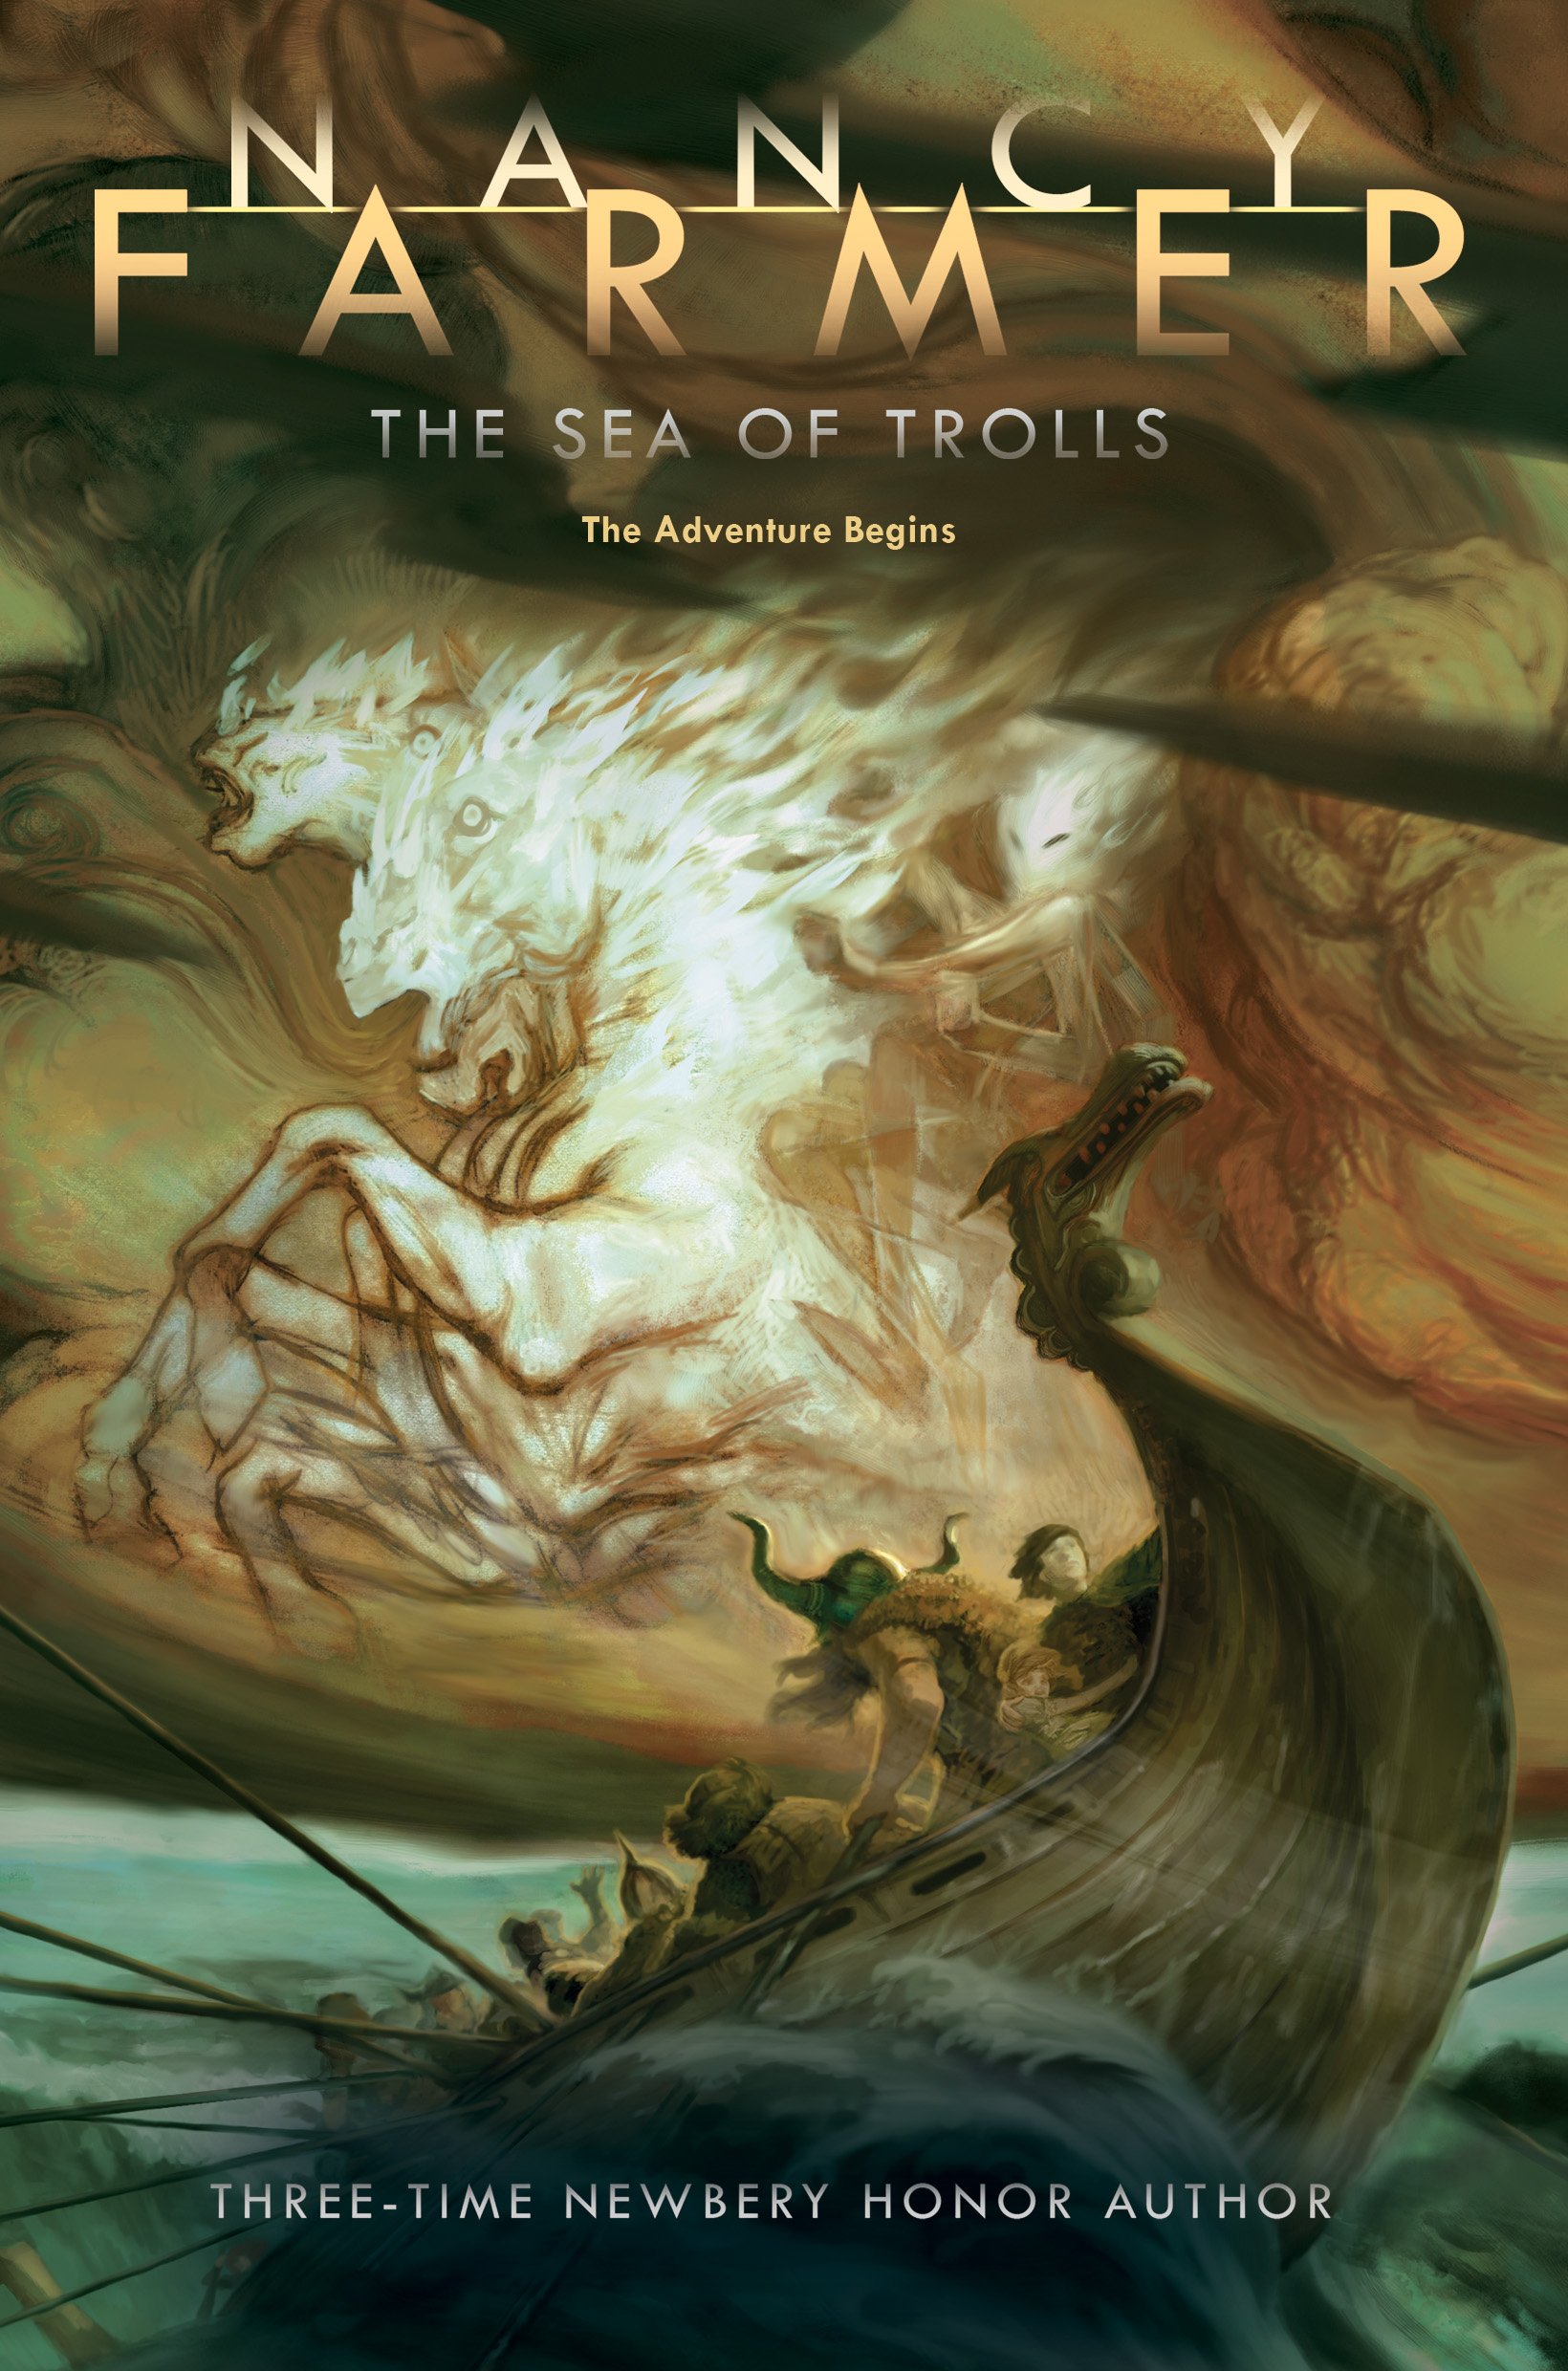 Nancy farmer official publisher page simon schuster canada book cover image jpg the sea of trolls fandeluxe Epub